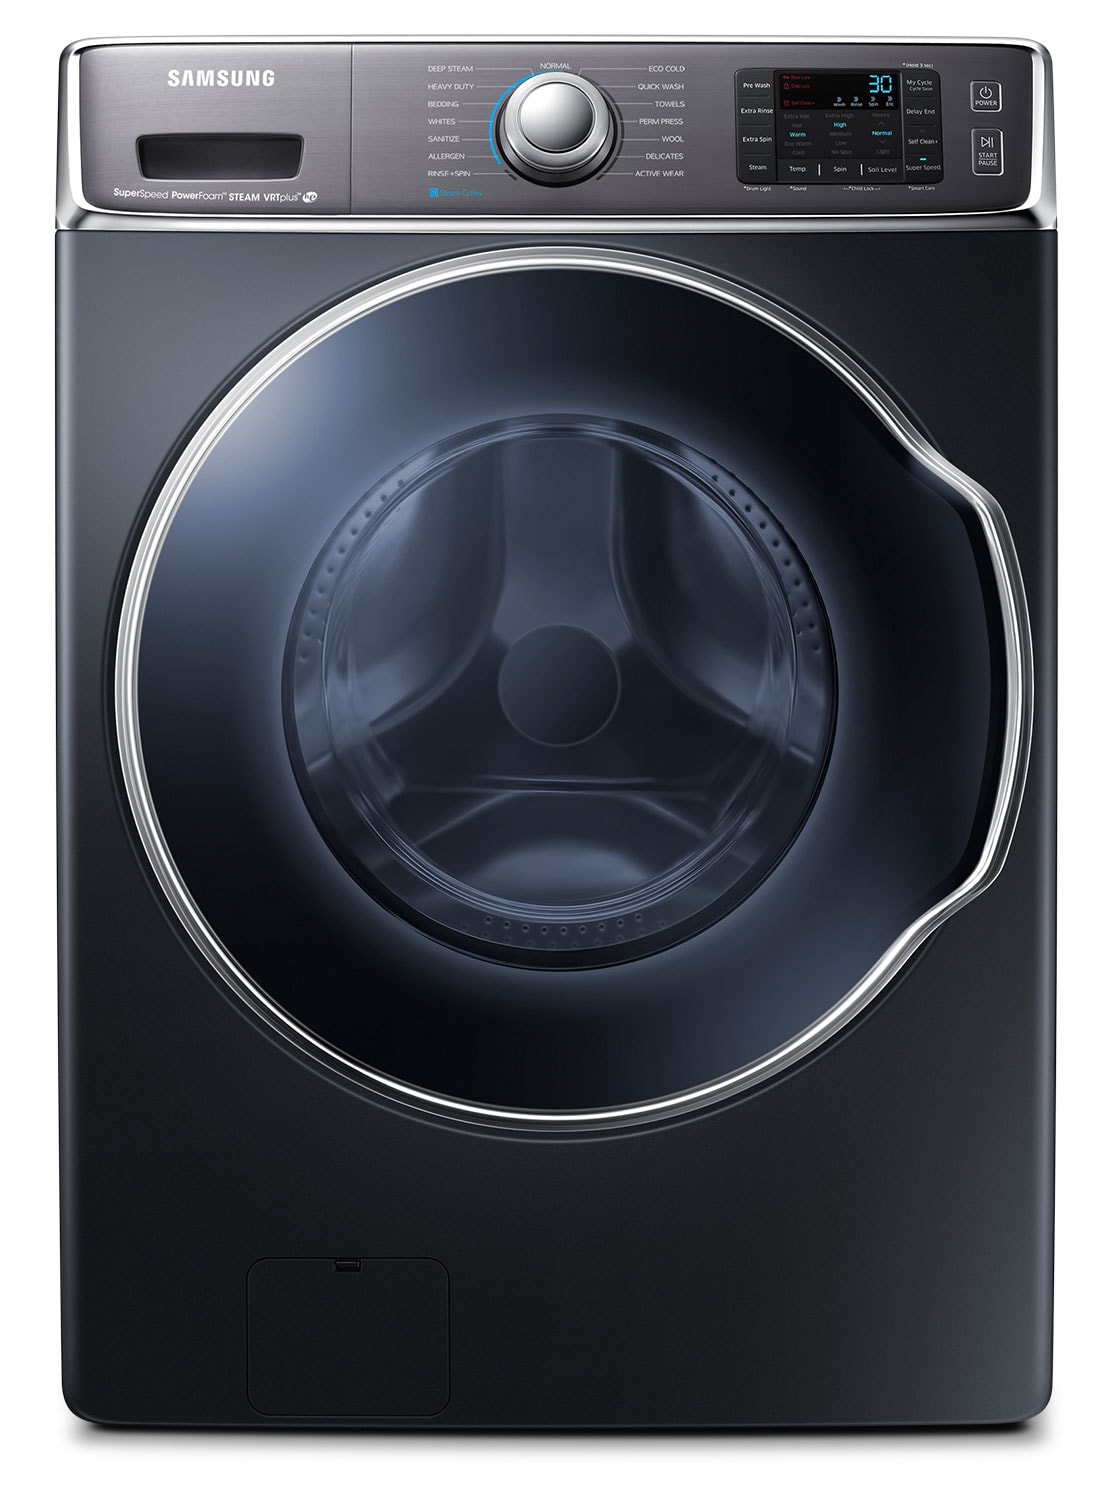 Washers and Dryers - Samsung Charcoal Front-Load Washer (6.5 Cu. Ft. IEC) - WF56H9100AG